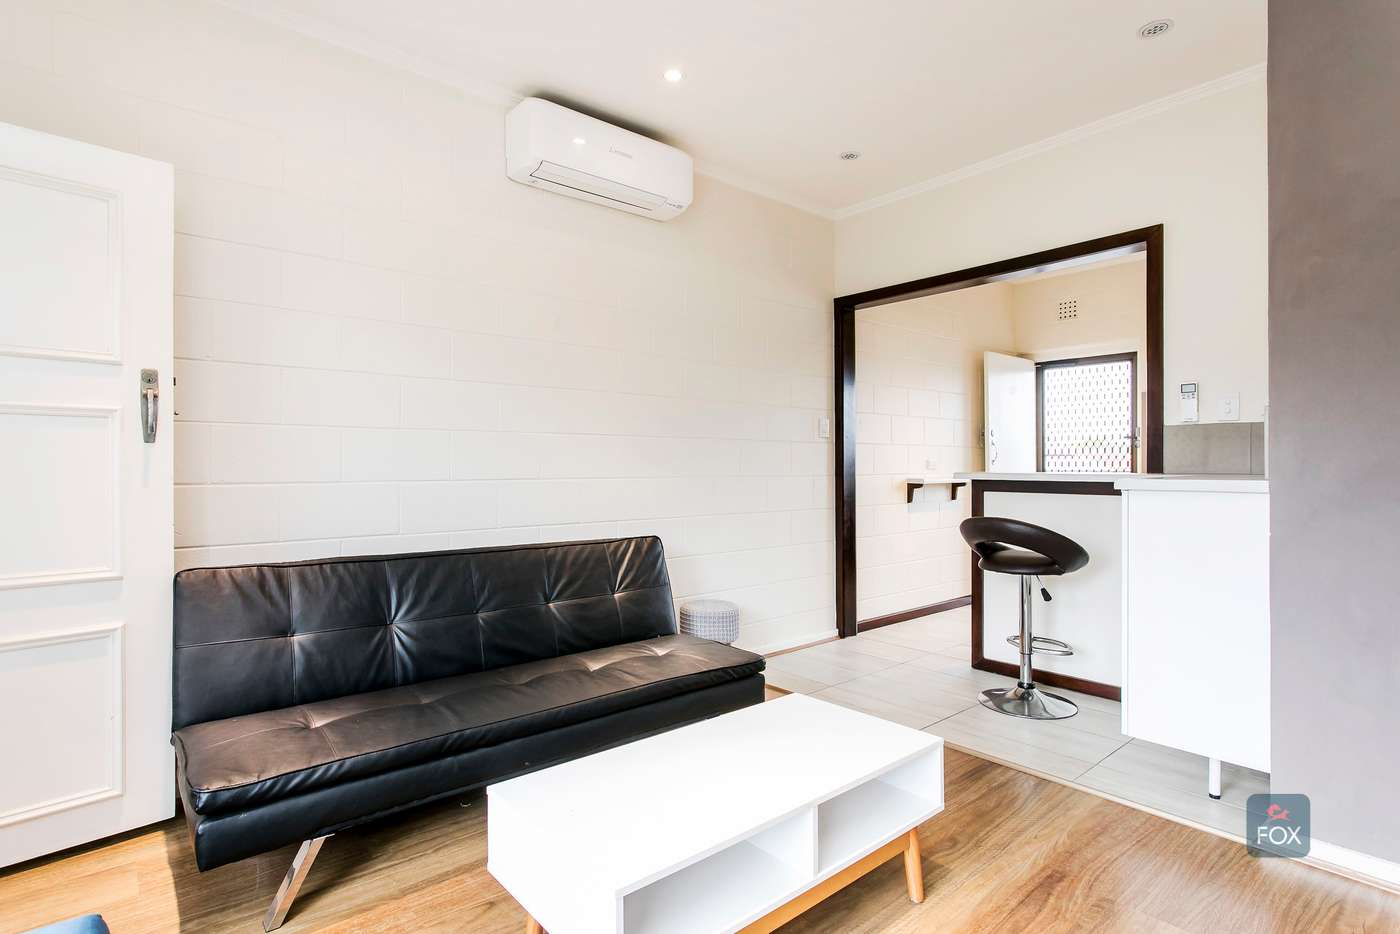 Sixth view of Homely house listing, 17/46 Military Road, West Beach SA 5024